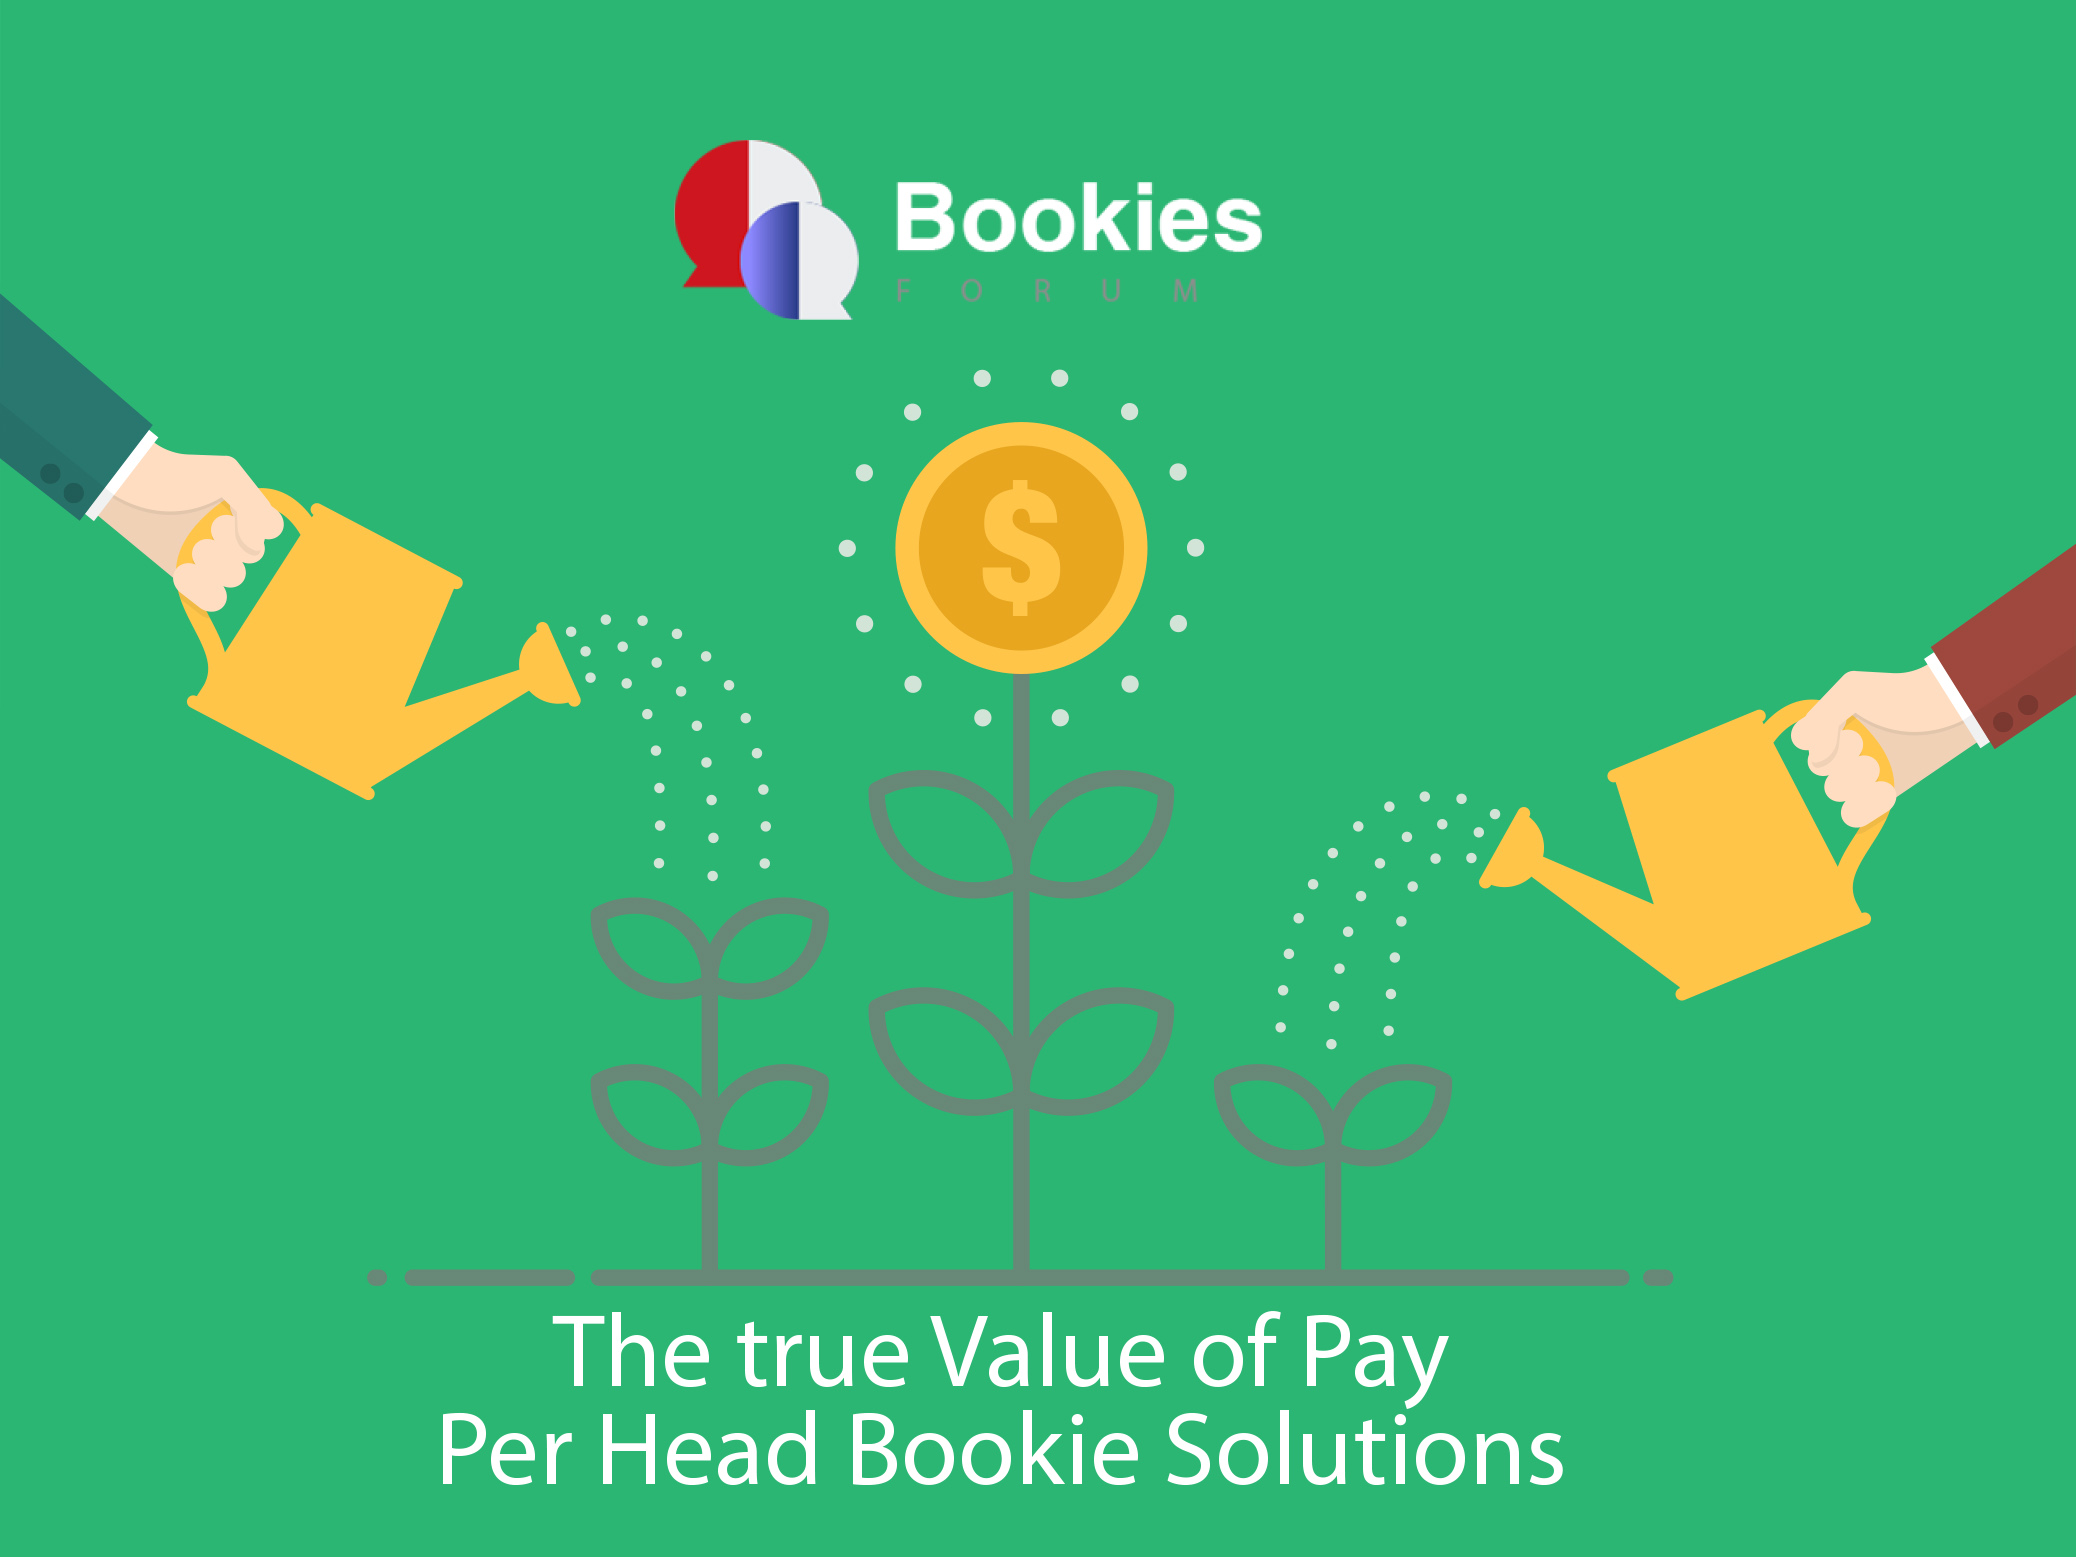 The True Value of Pay Per Head Bookie Solutions